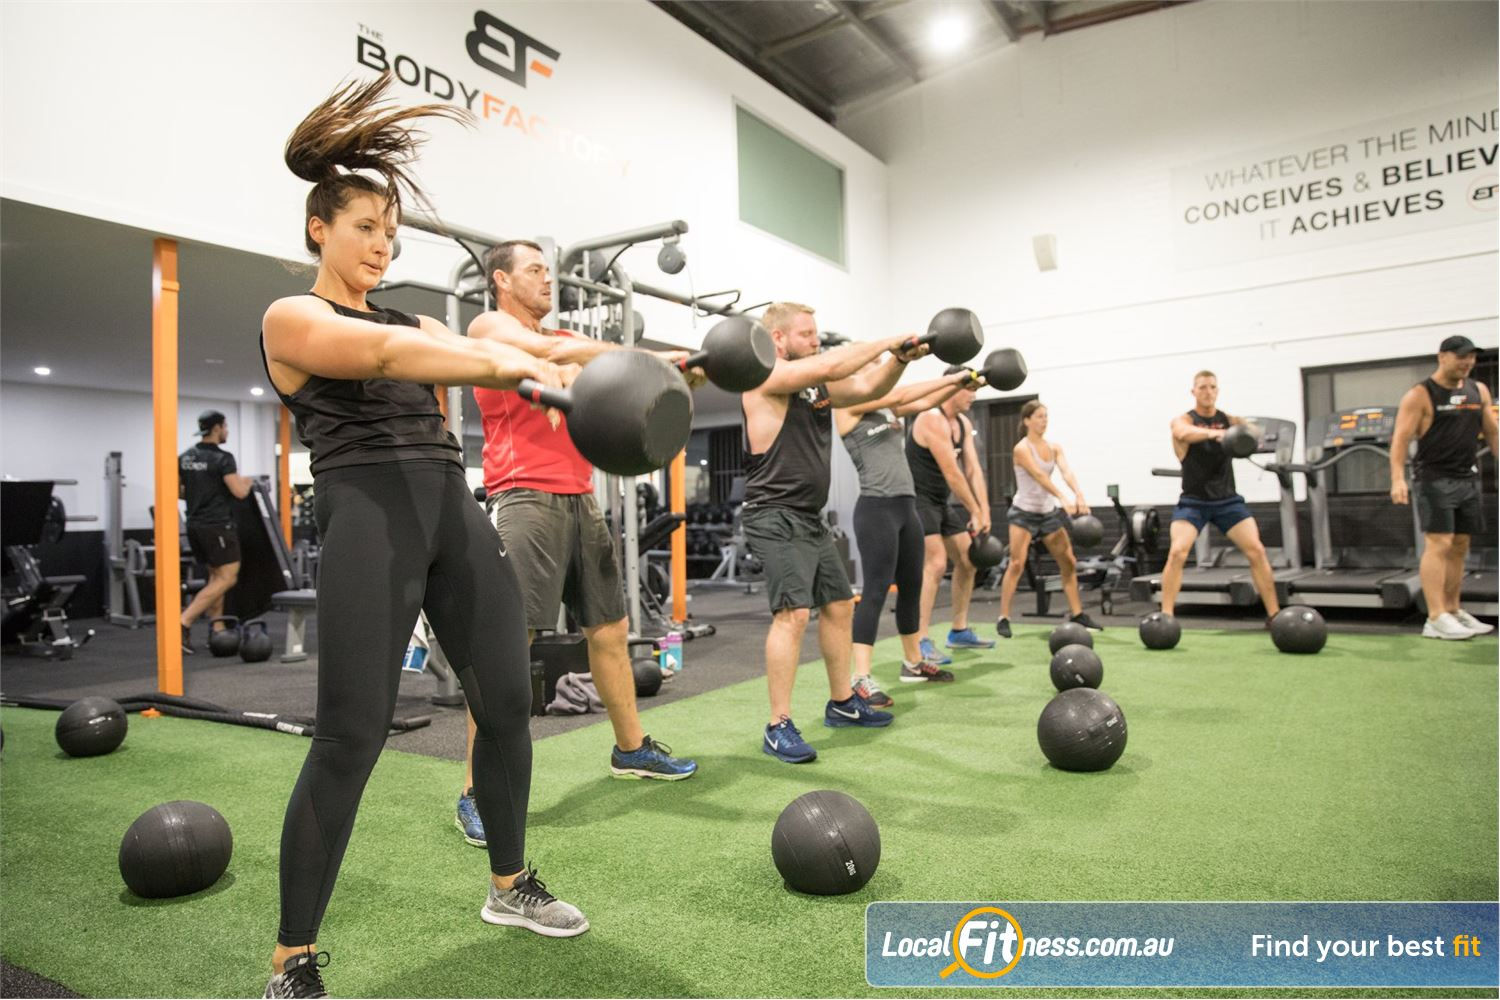 The Body Factory Near Port Hacking Our Caringbah gym is designed around innovative group functional training.